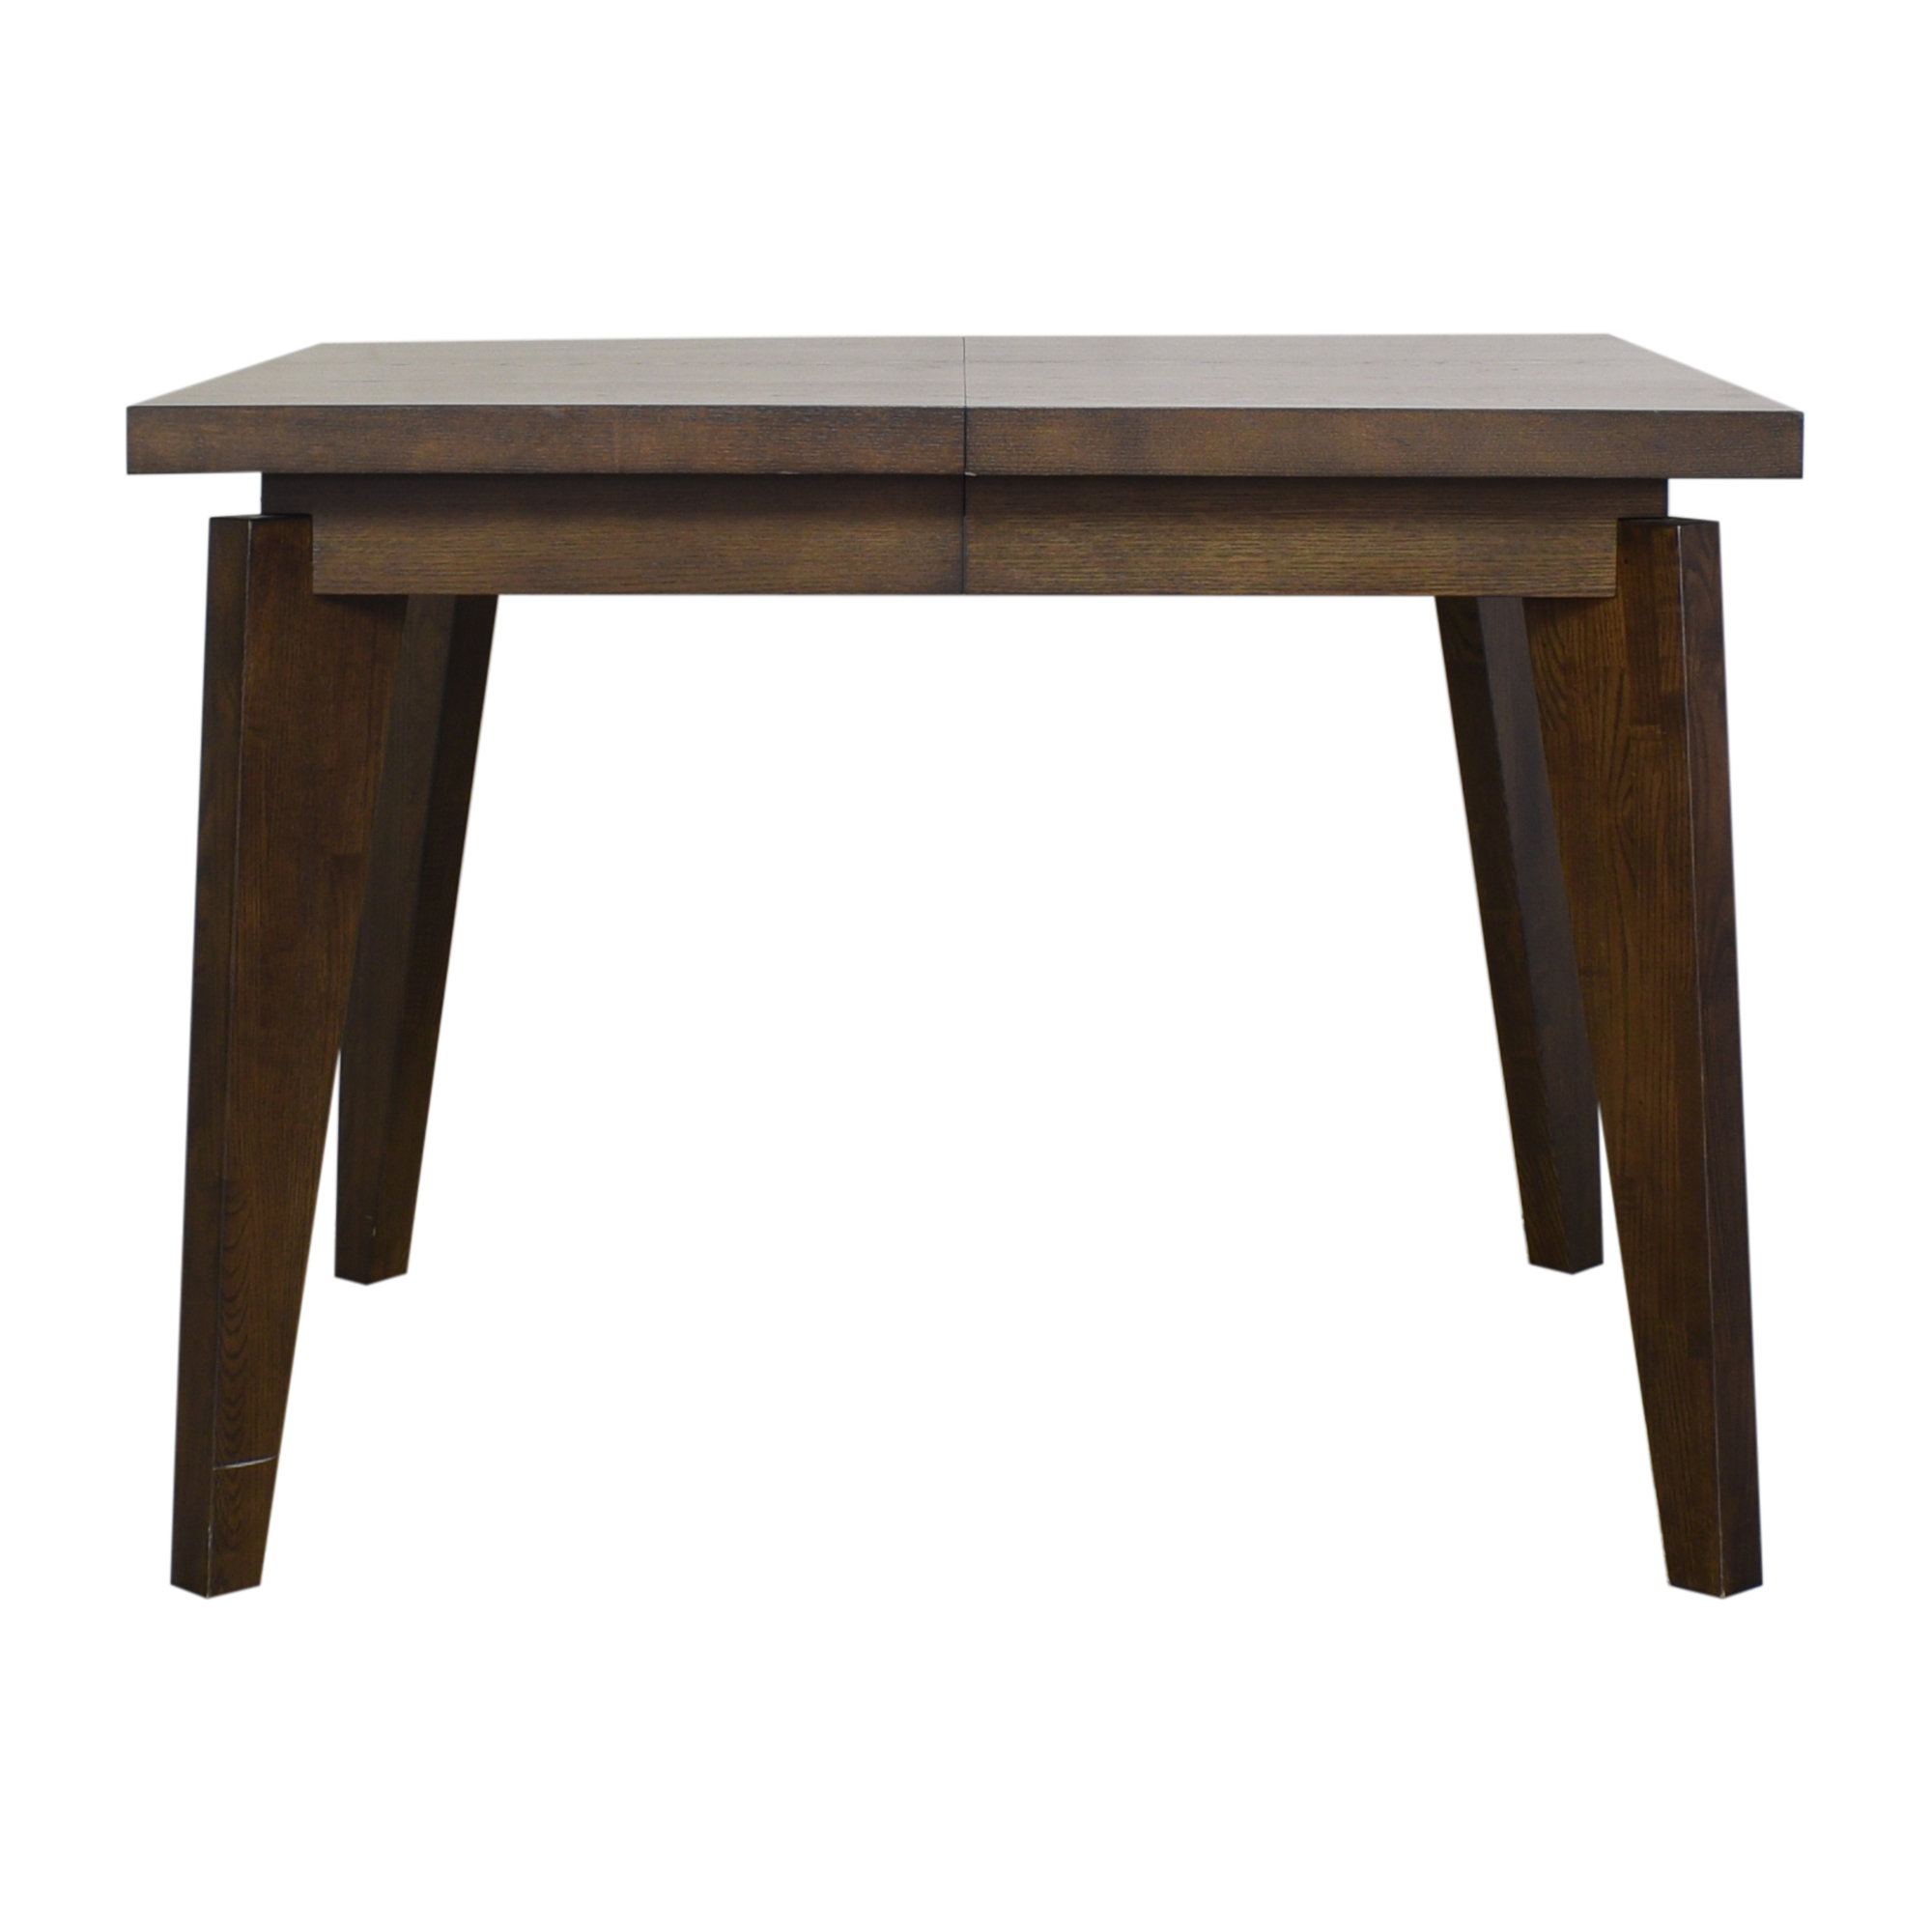 West Elm West Elm Angled Leg Expandable Dining Table used